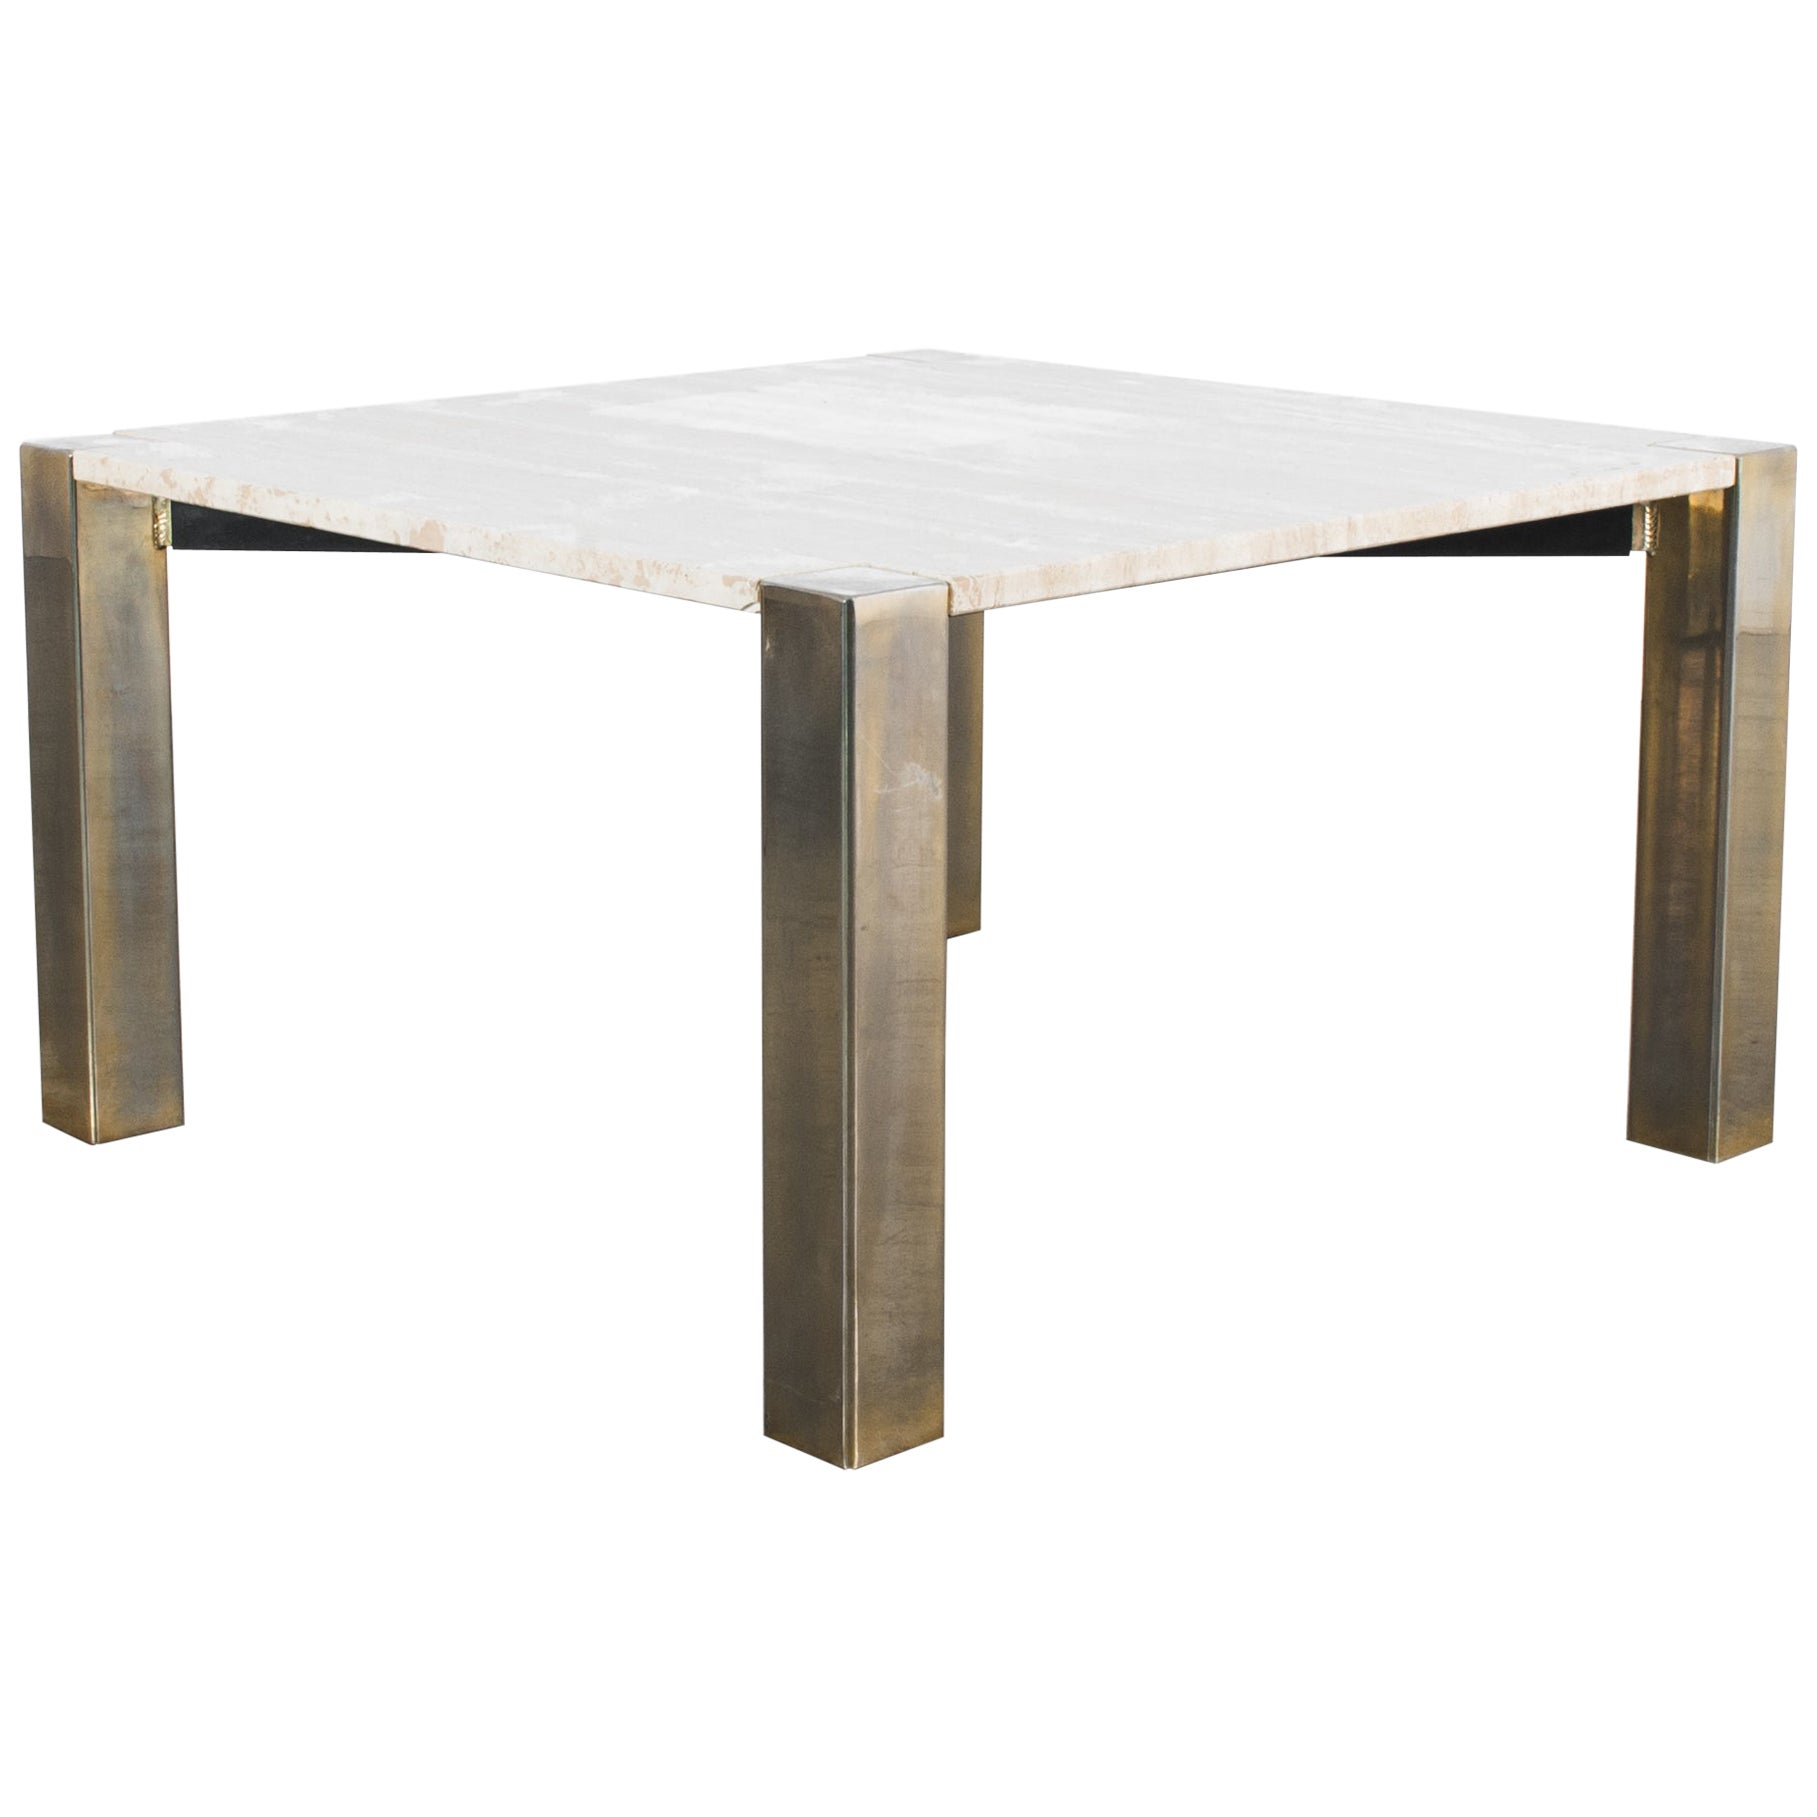 1970s Italian Travertine and Brass Coffee Table